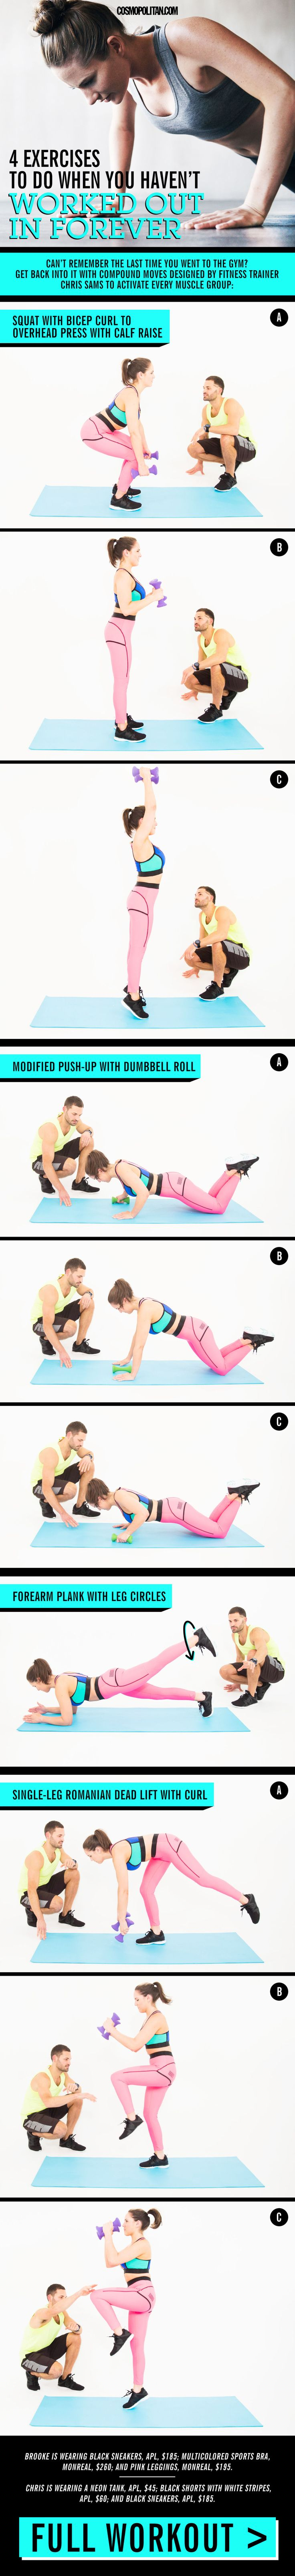 HOW TO BEGIN WORKING OUT AGAIN: If you haven't been to the gym in like ~foreva~ or haven't broken a sweat in a while, use these 4 moves designed by NYC-based fitness trainer Chris Sams to get back into it. The workout is comprised of compound movements that strengthen every major muscle group while revving up your heart rate — so you can check the boxes on cardio and weight training in the least amount of time. Click through for the full workout instructions.